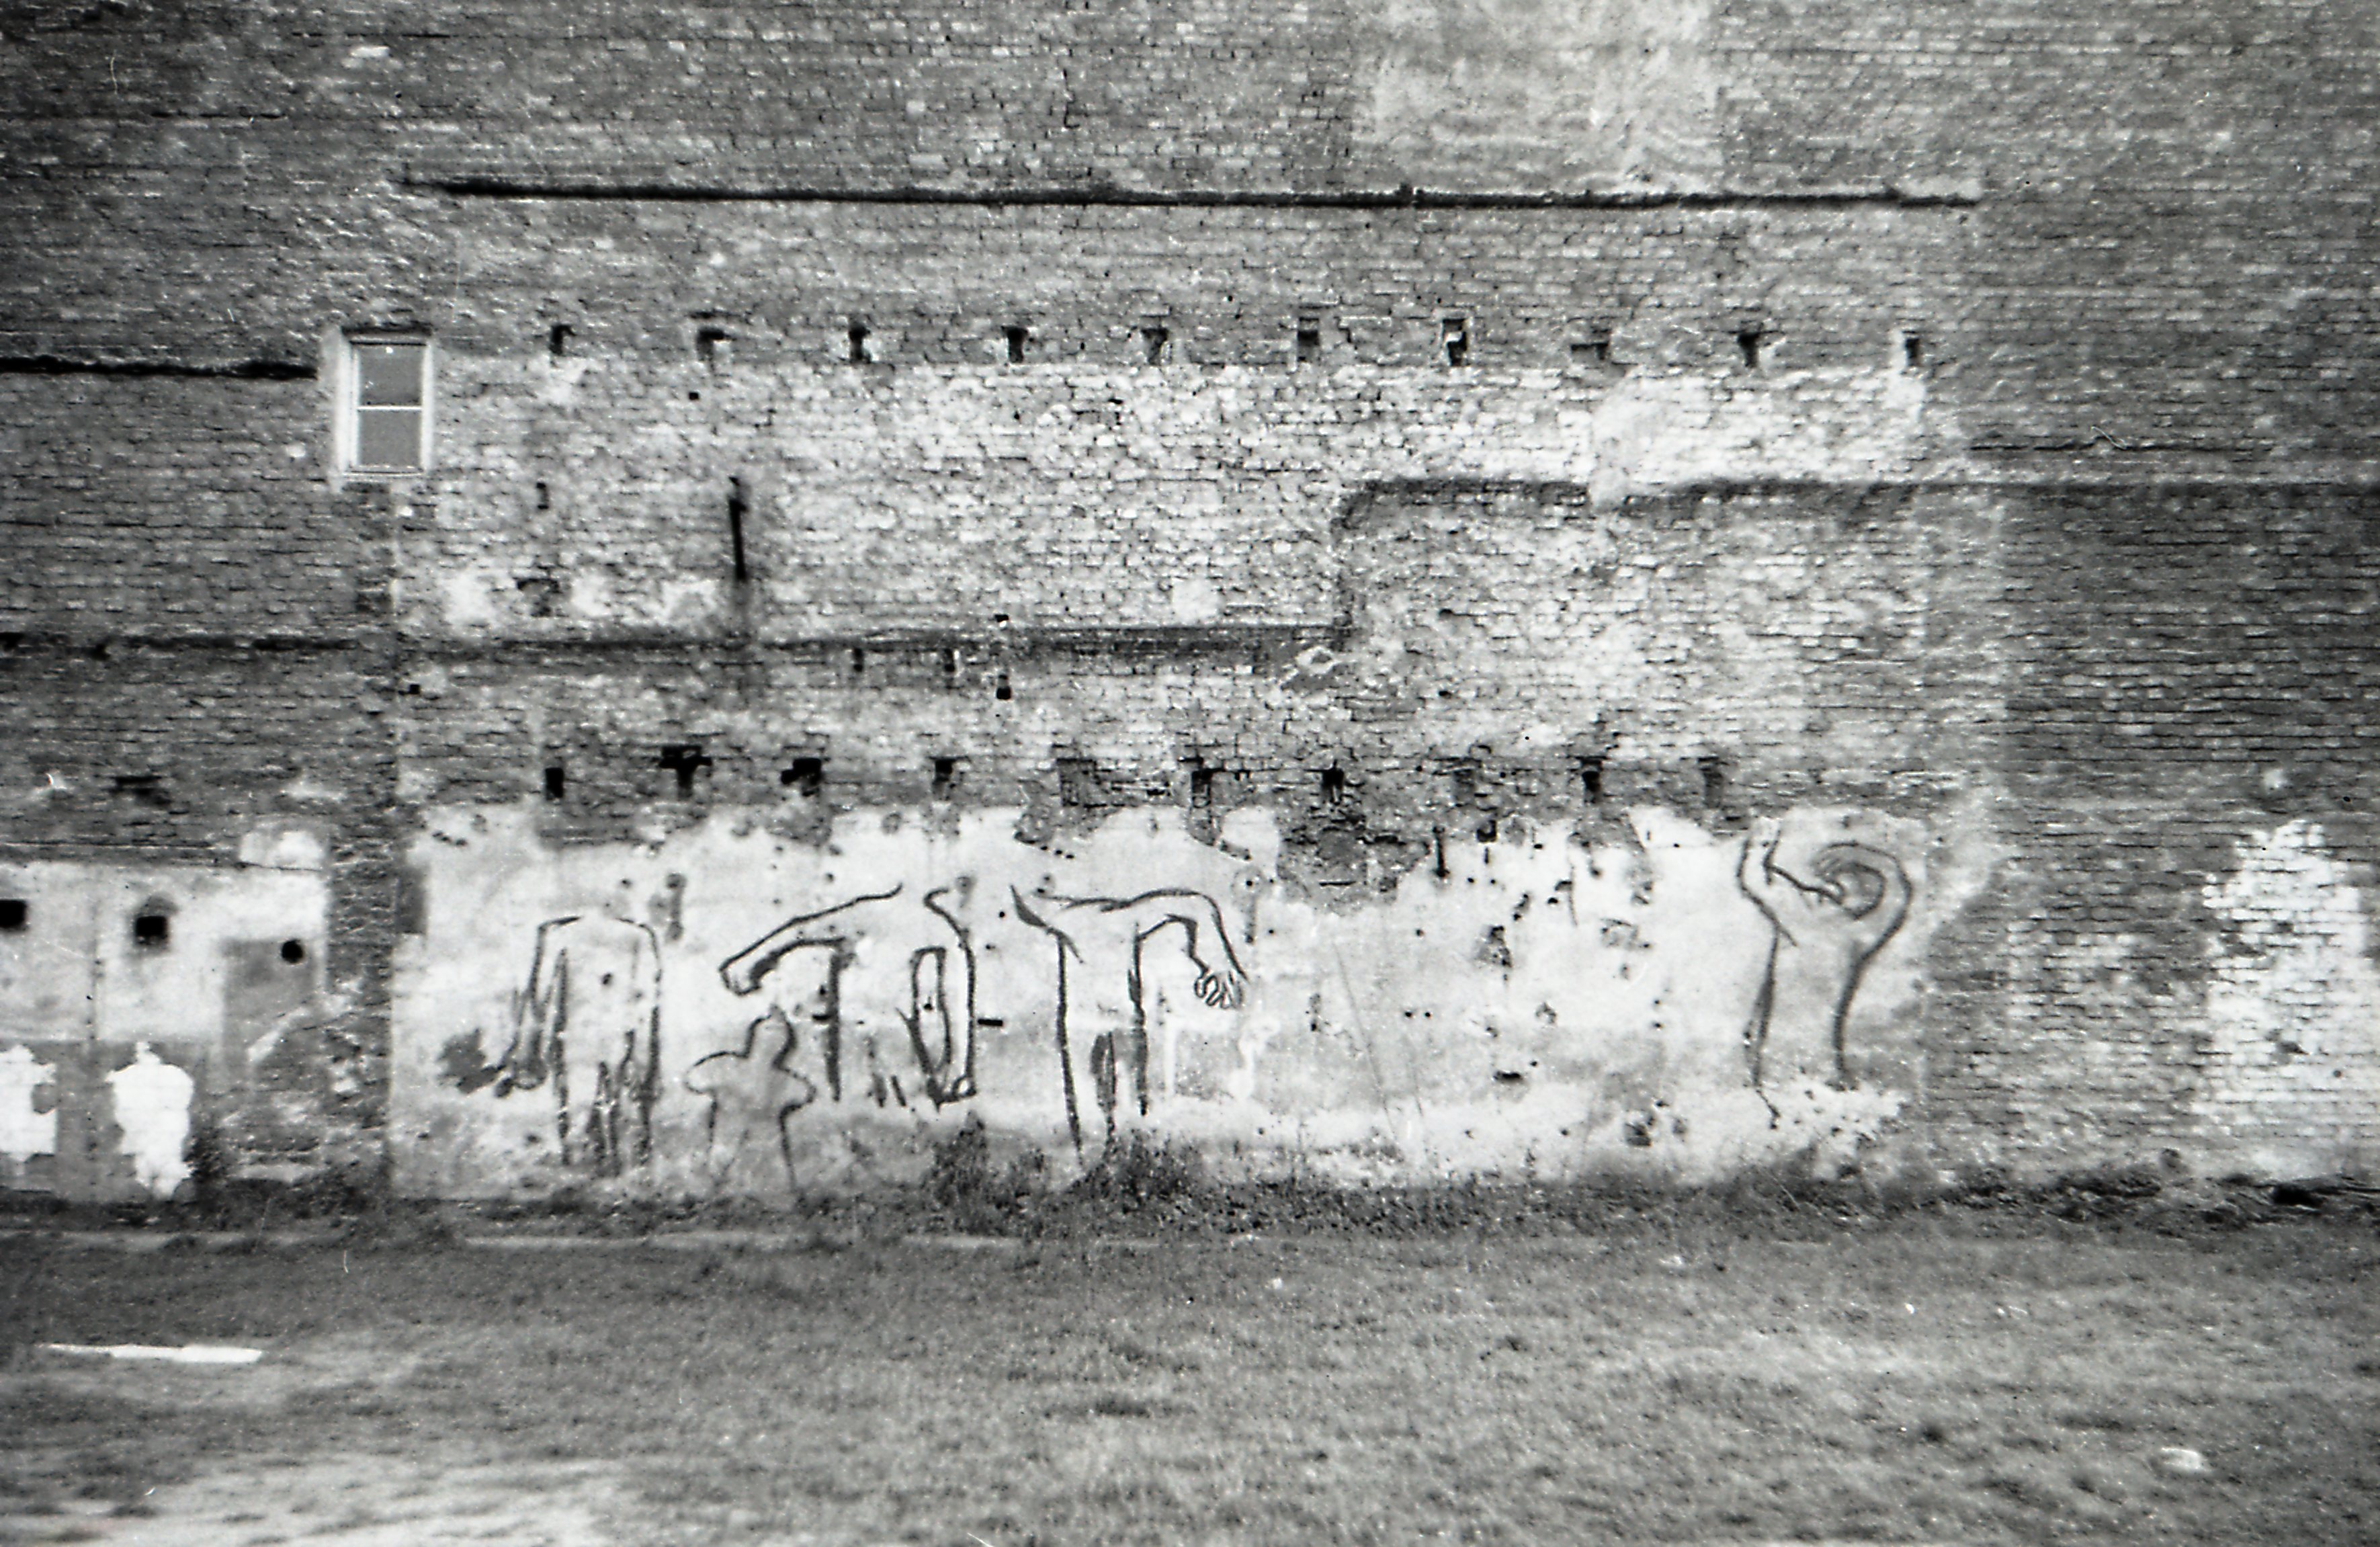 The photo showed the graffiti called 'Taniec śmierci' (Dance of Death) painted by Włodzimierz Fruczek on Waliców street, Warsaw, 1970. Tomasz Sikorski took this photo in 1974.